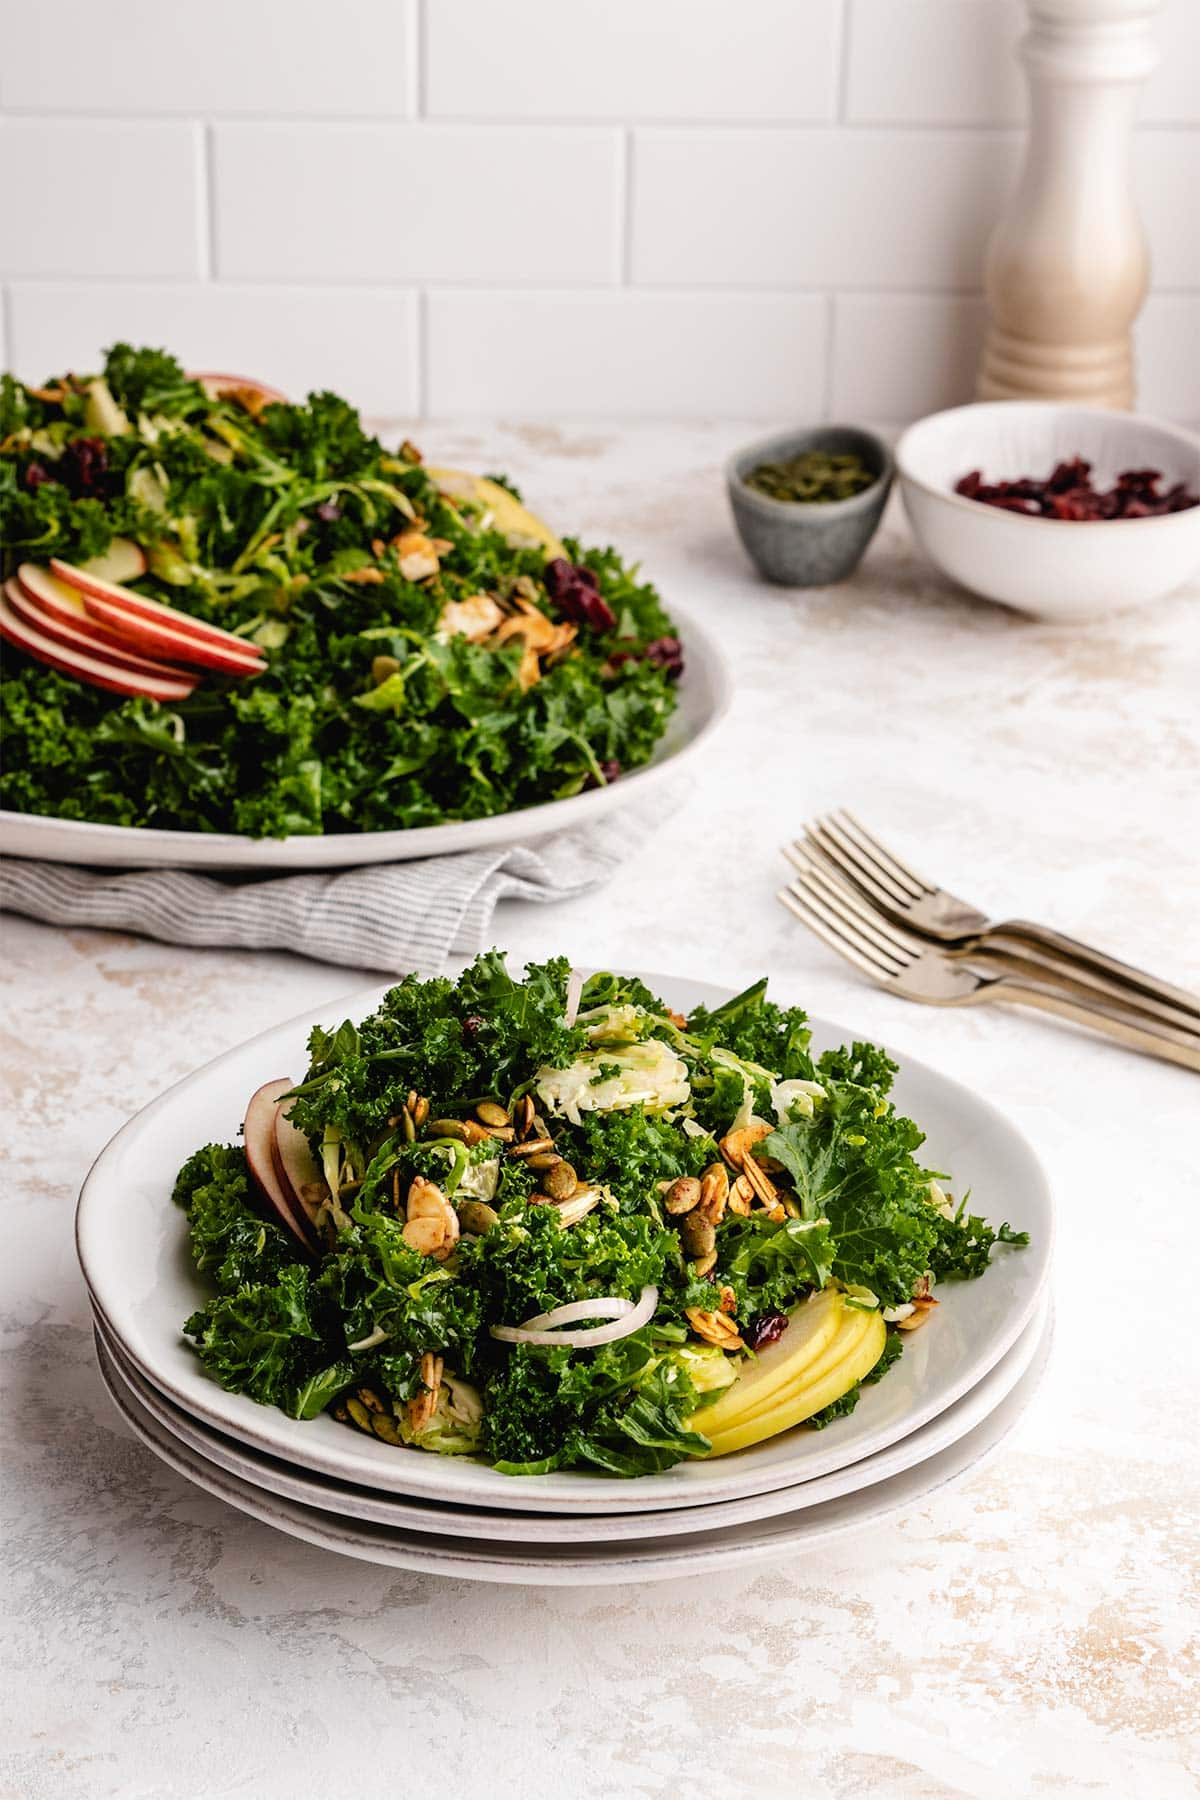 A serving of Kale and Brussels Sprouts Salad on a stack of 3 white plates, in front of the remaining salad on a serving dish.